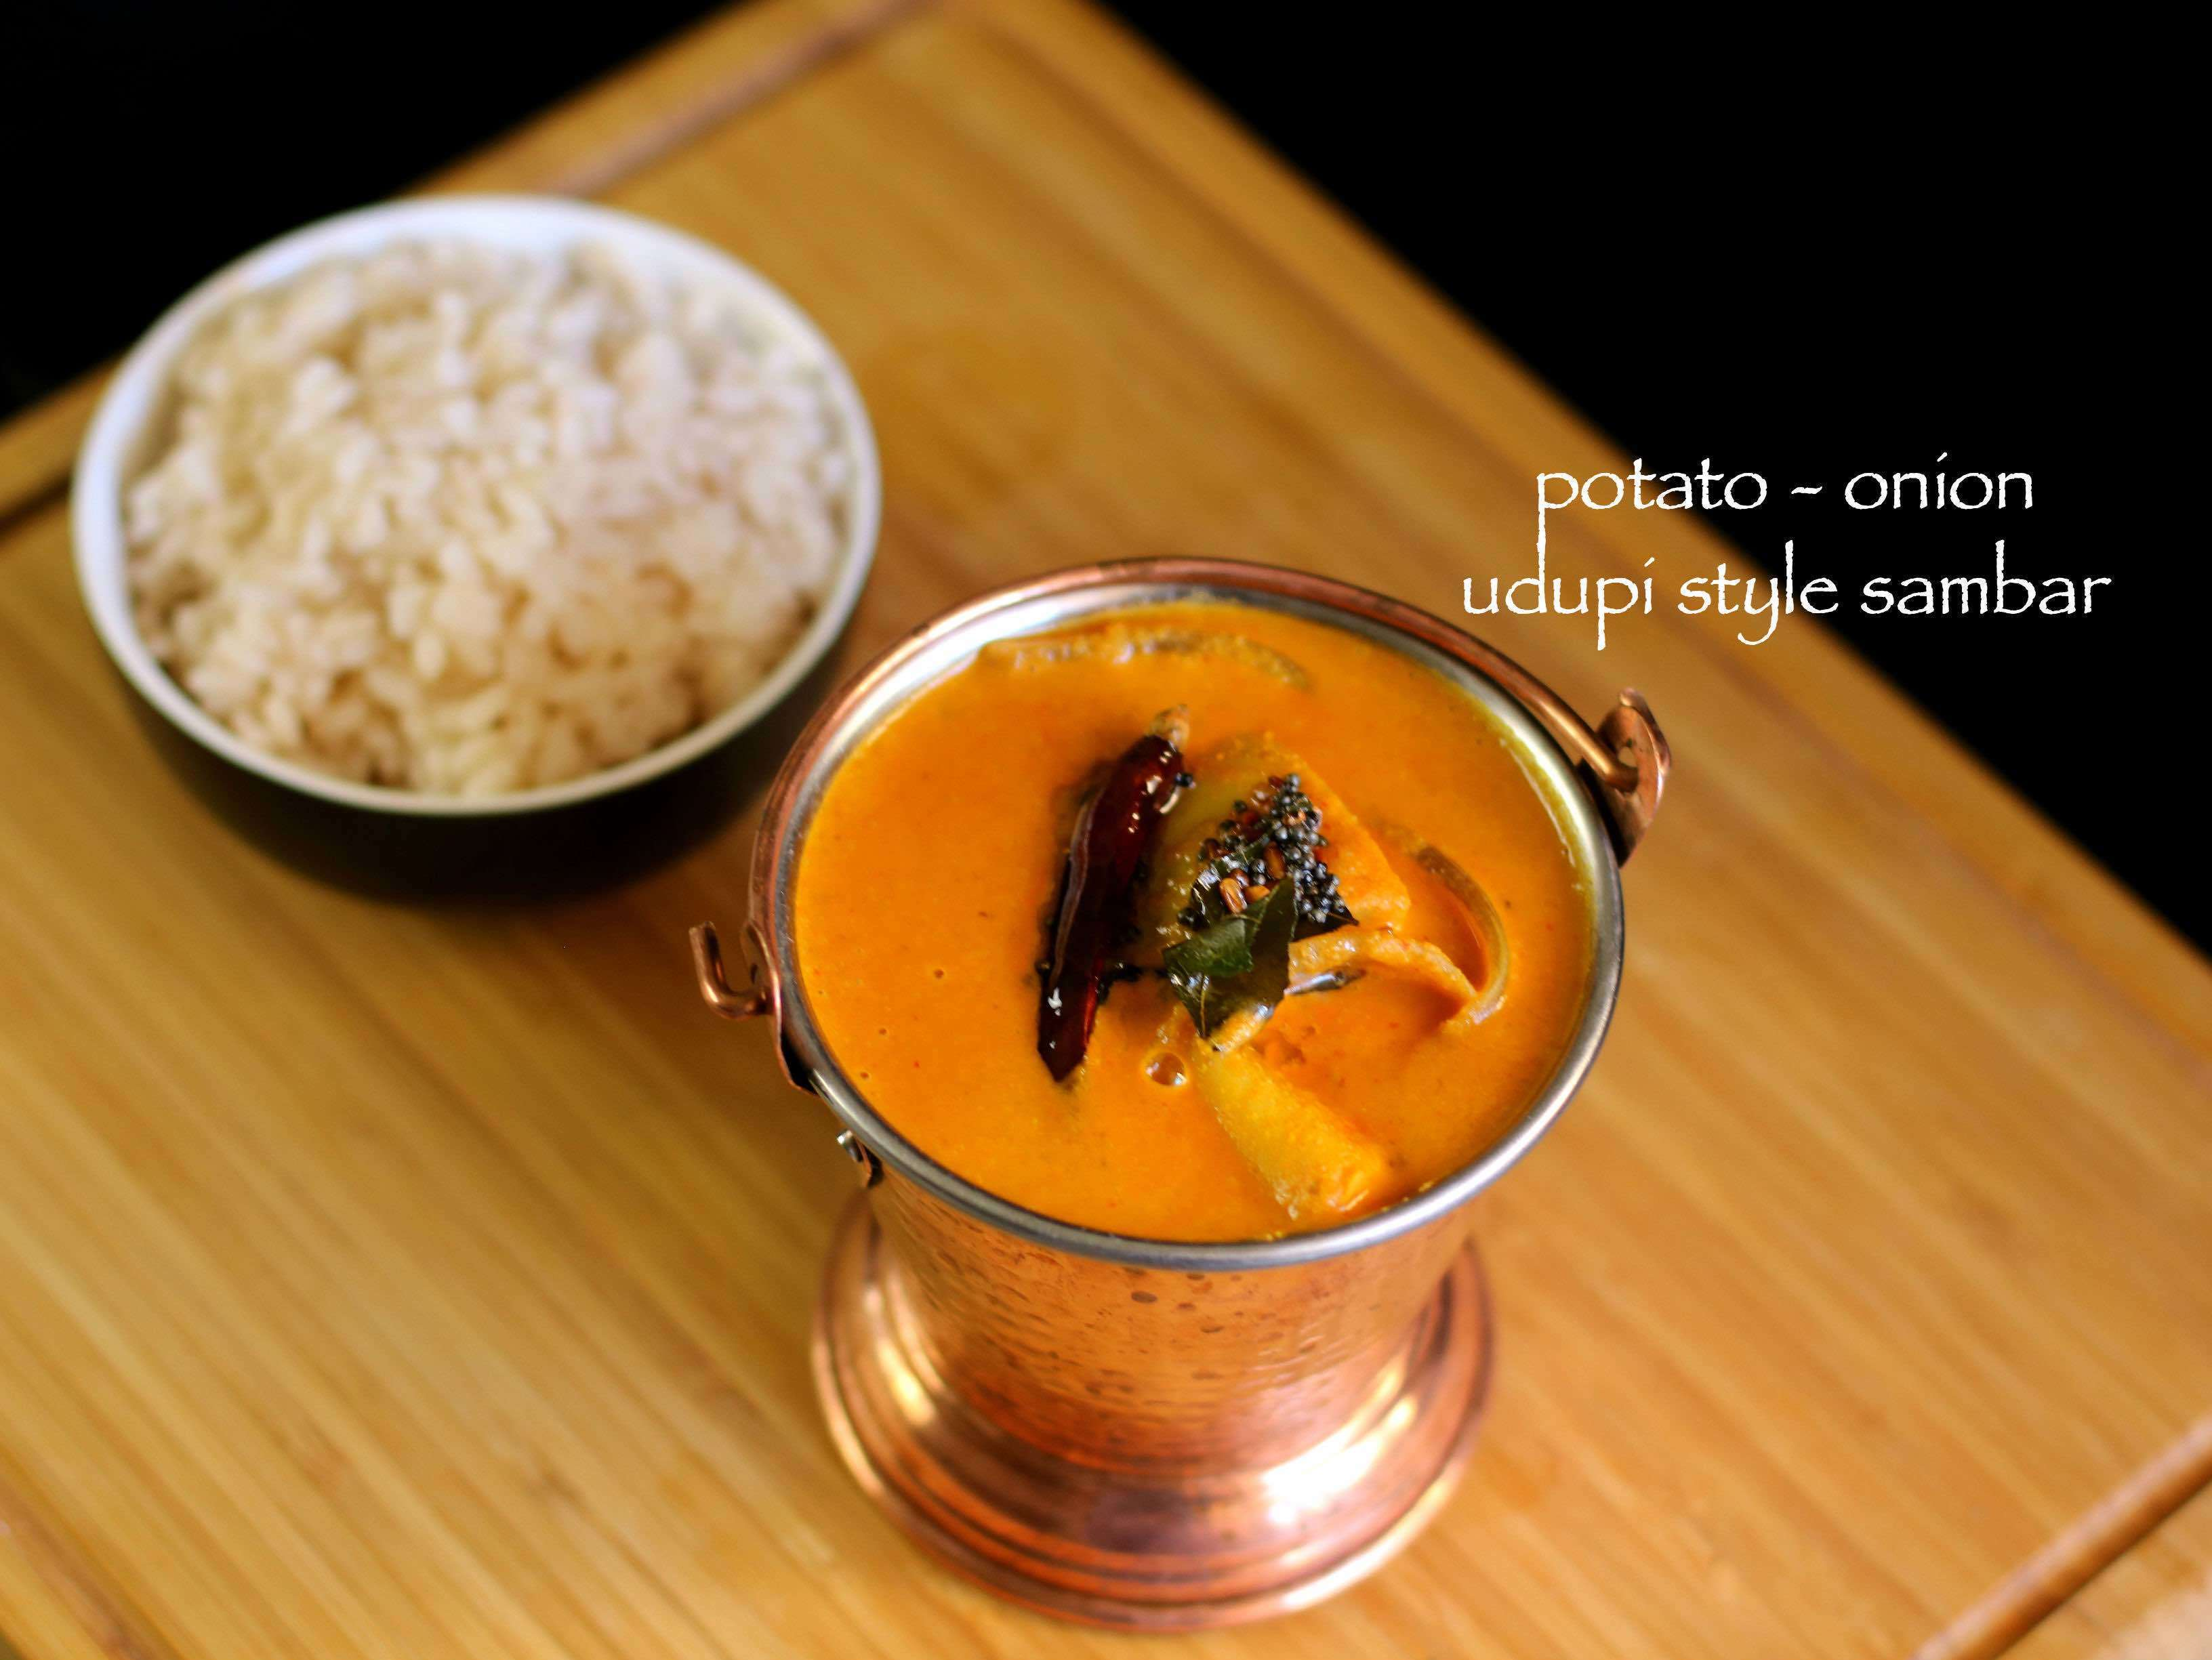 udupi sambar recipe | coconut sambar recipe | potato onion sambar